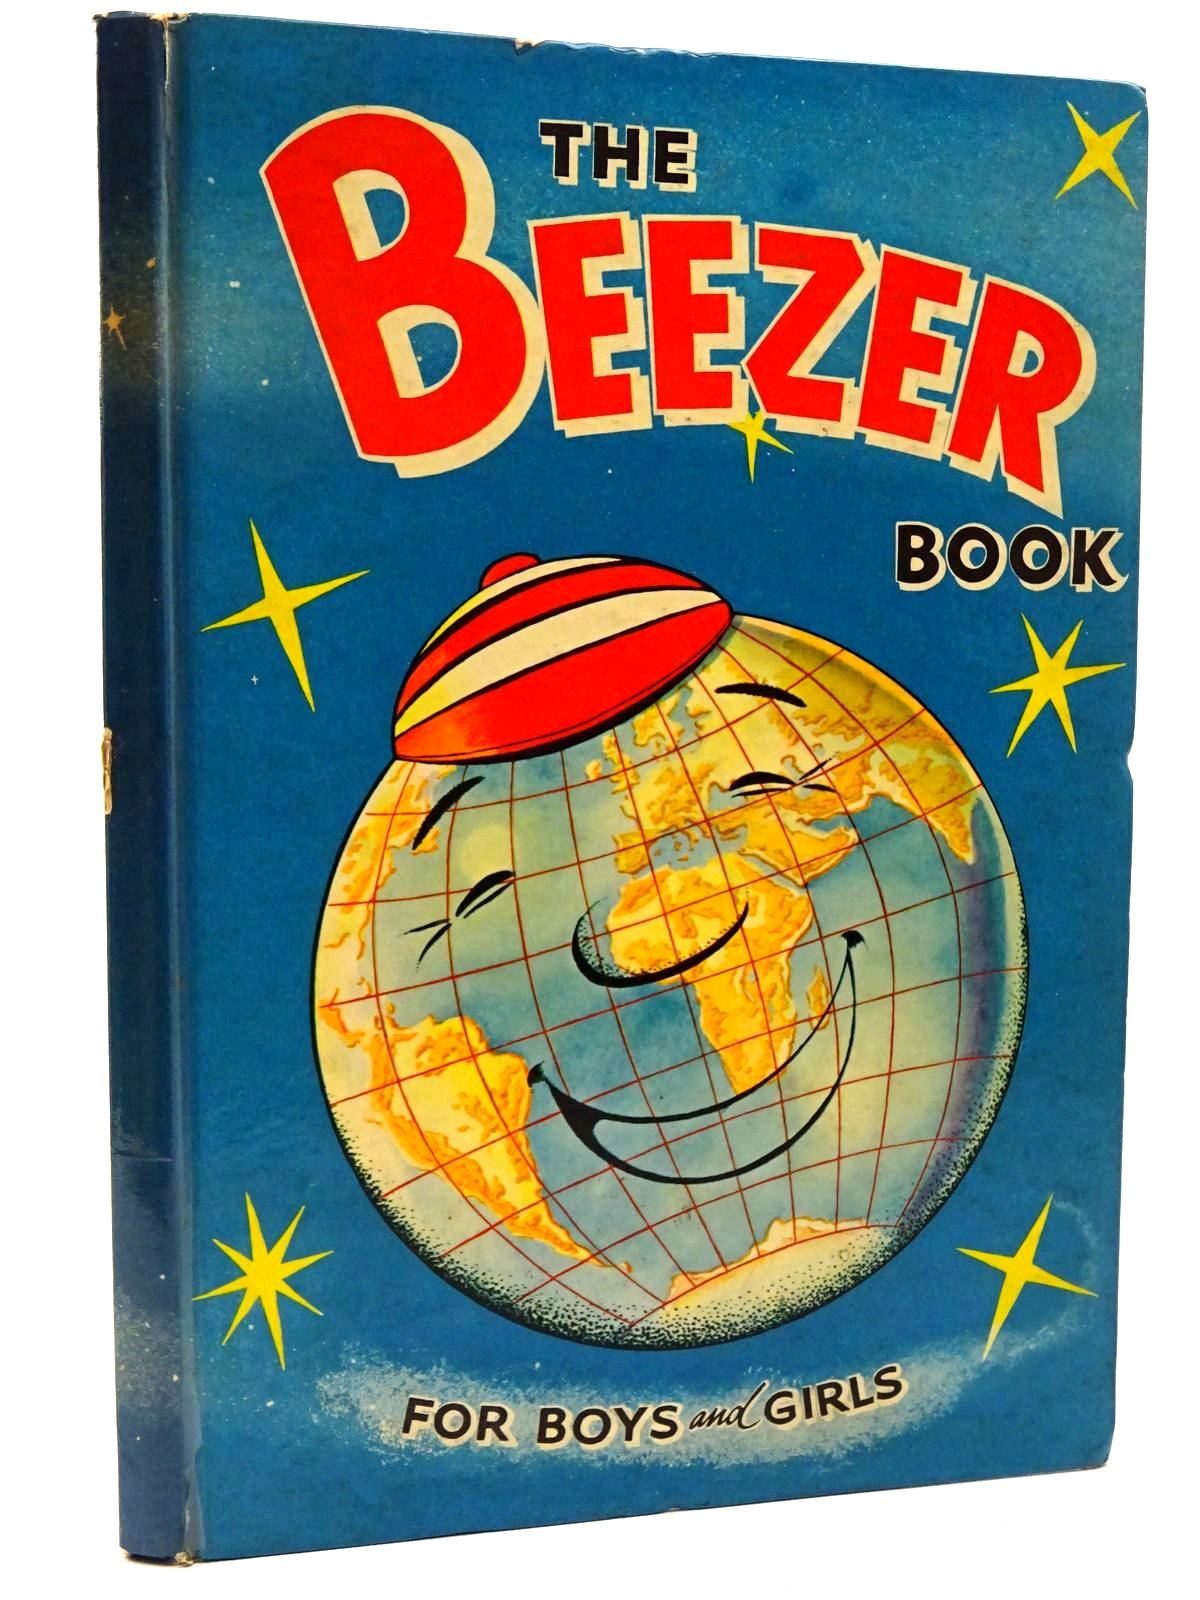 Photo of THE BEEZER BOOK 1961 published by D.C. Thomson & Co Ltd. (STOCK CODE: 2124418)  for sale by Stella & Rose's Books